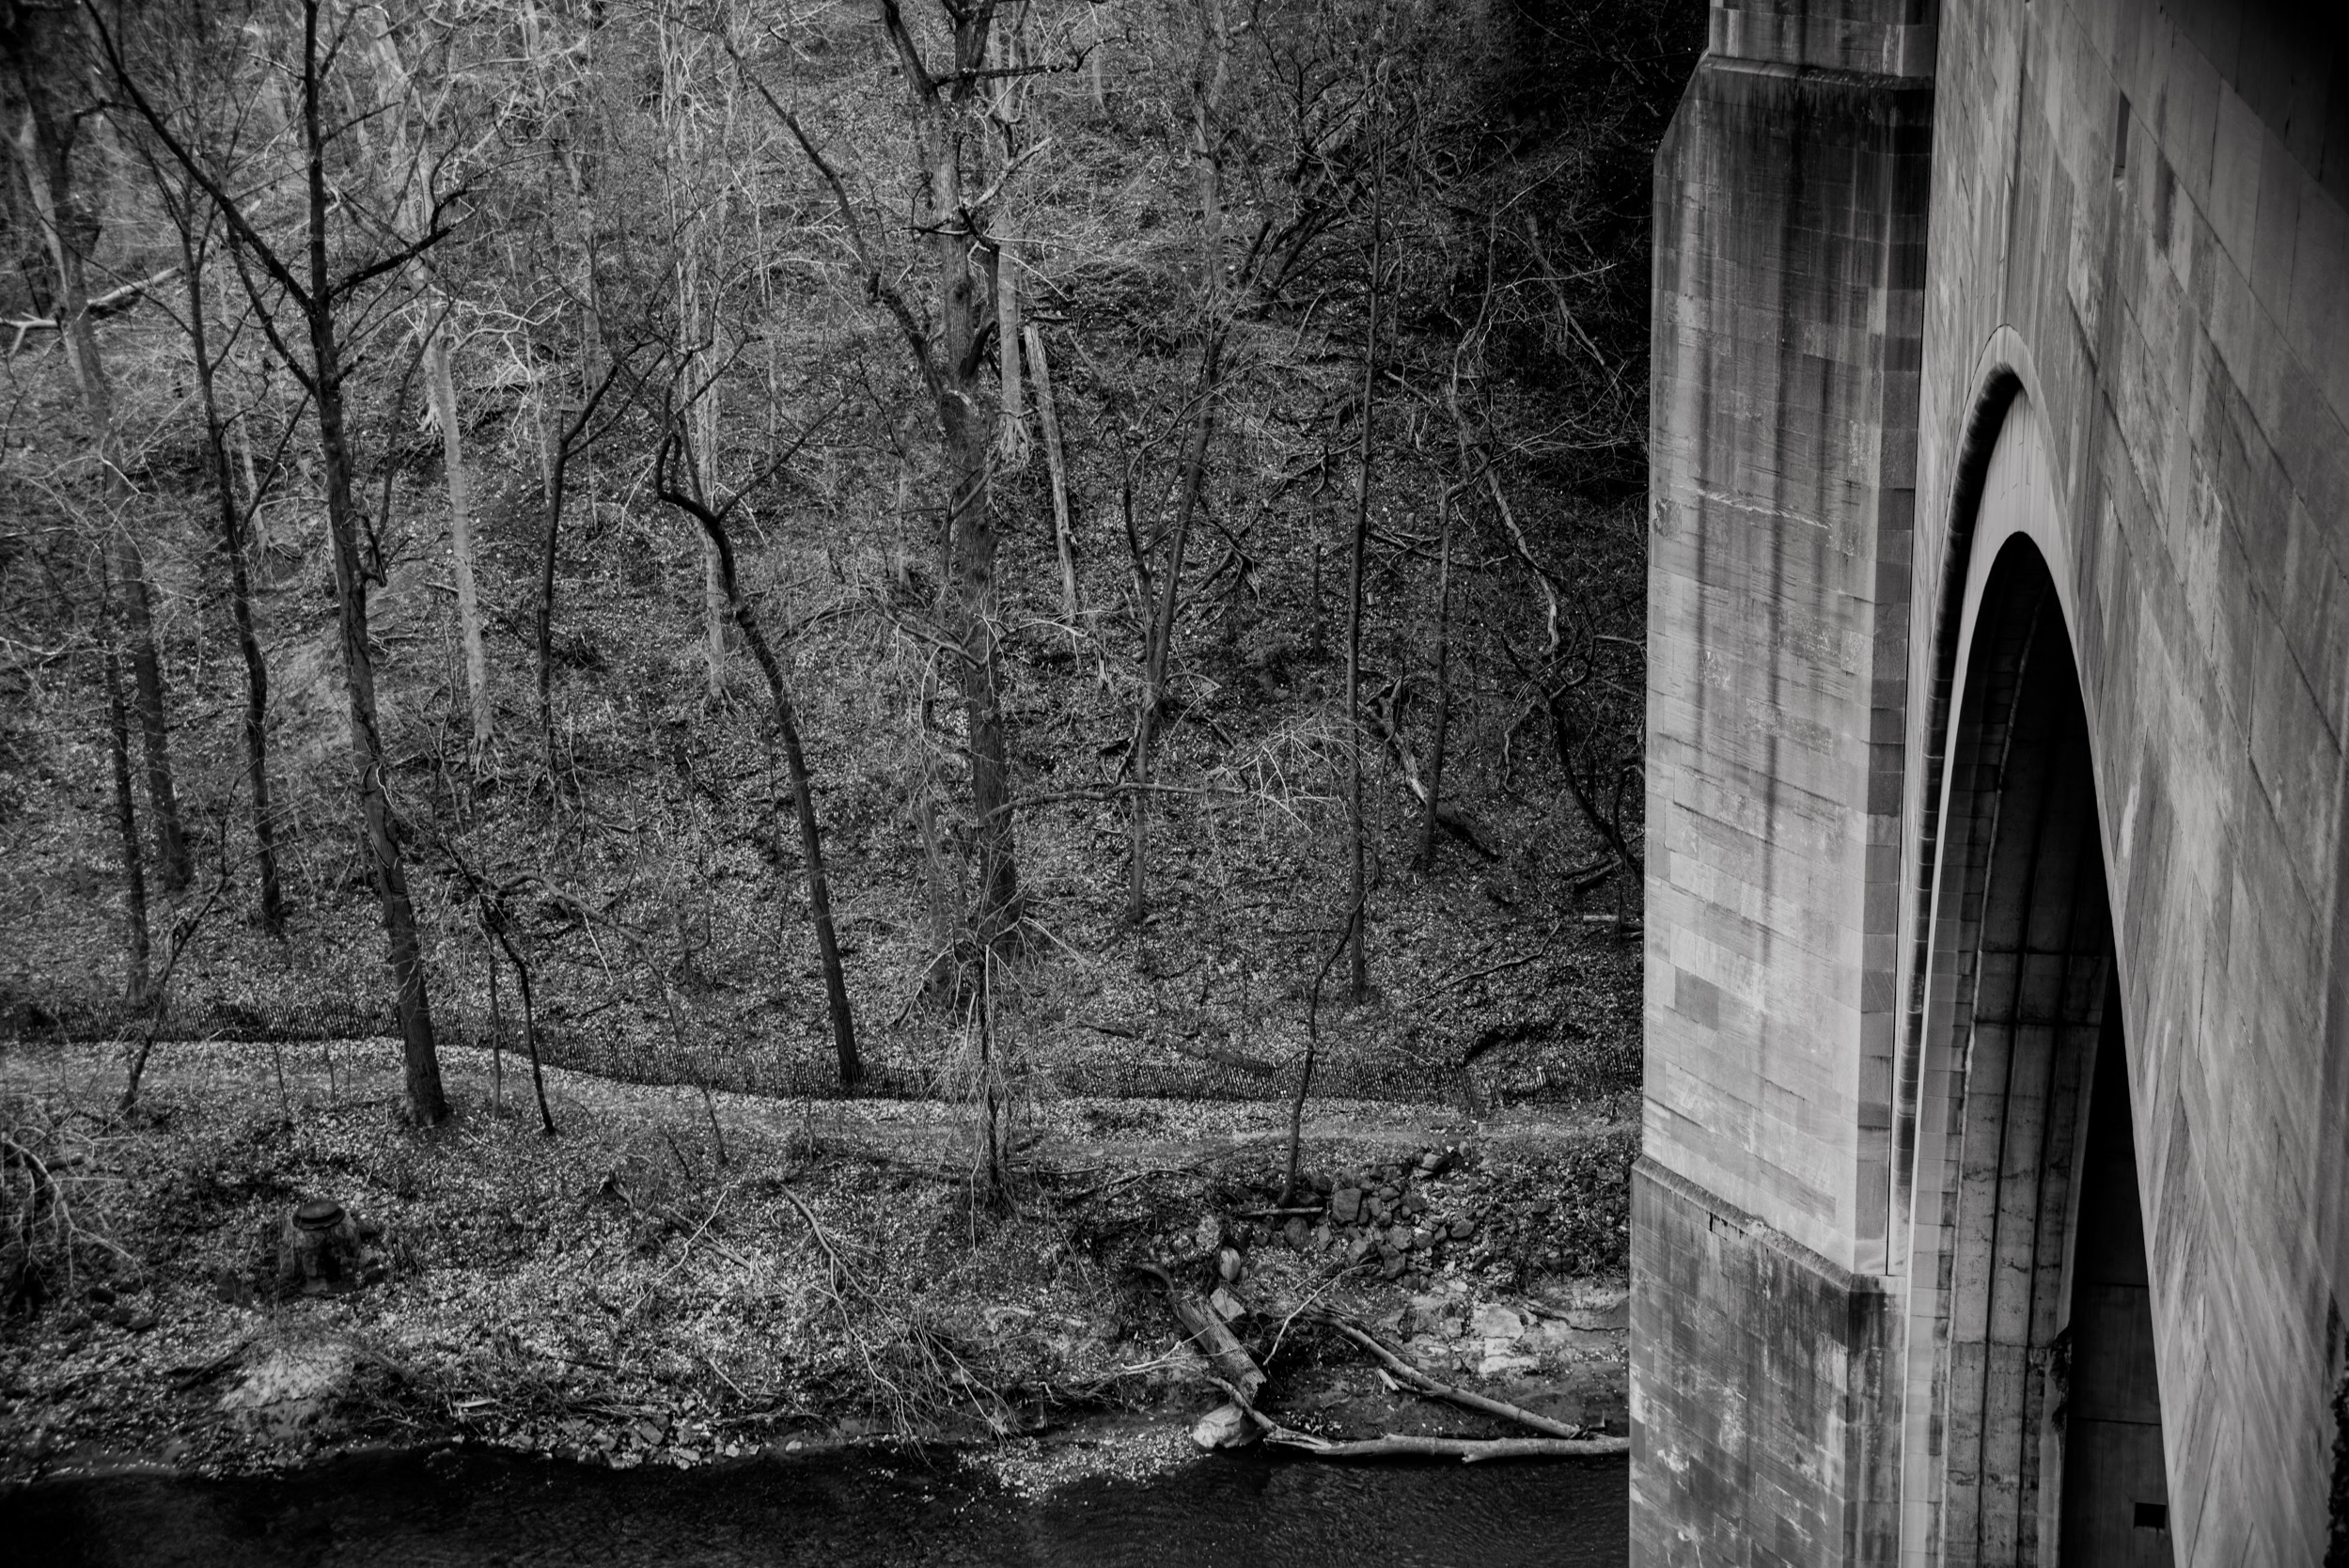 Bridge at Rock Creek Park, Washington D. C. © Robert Welkie 2016